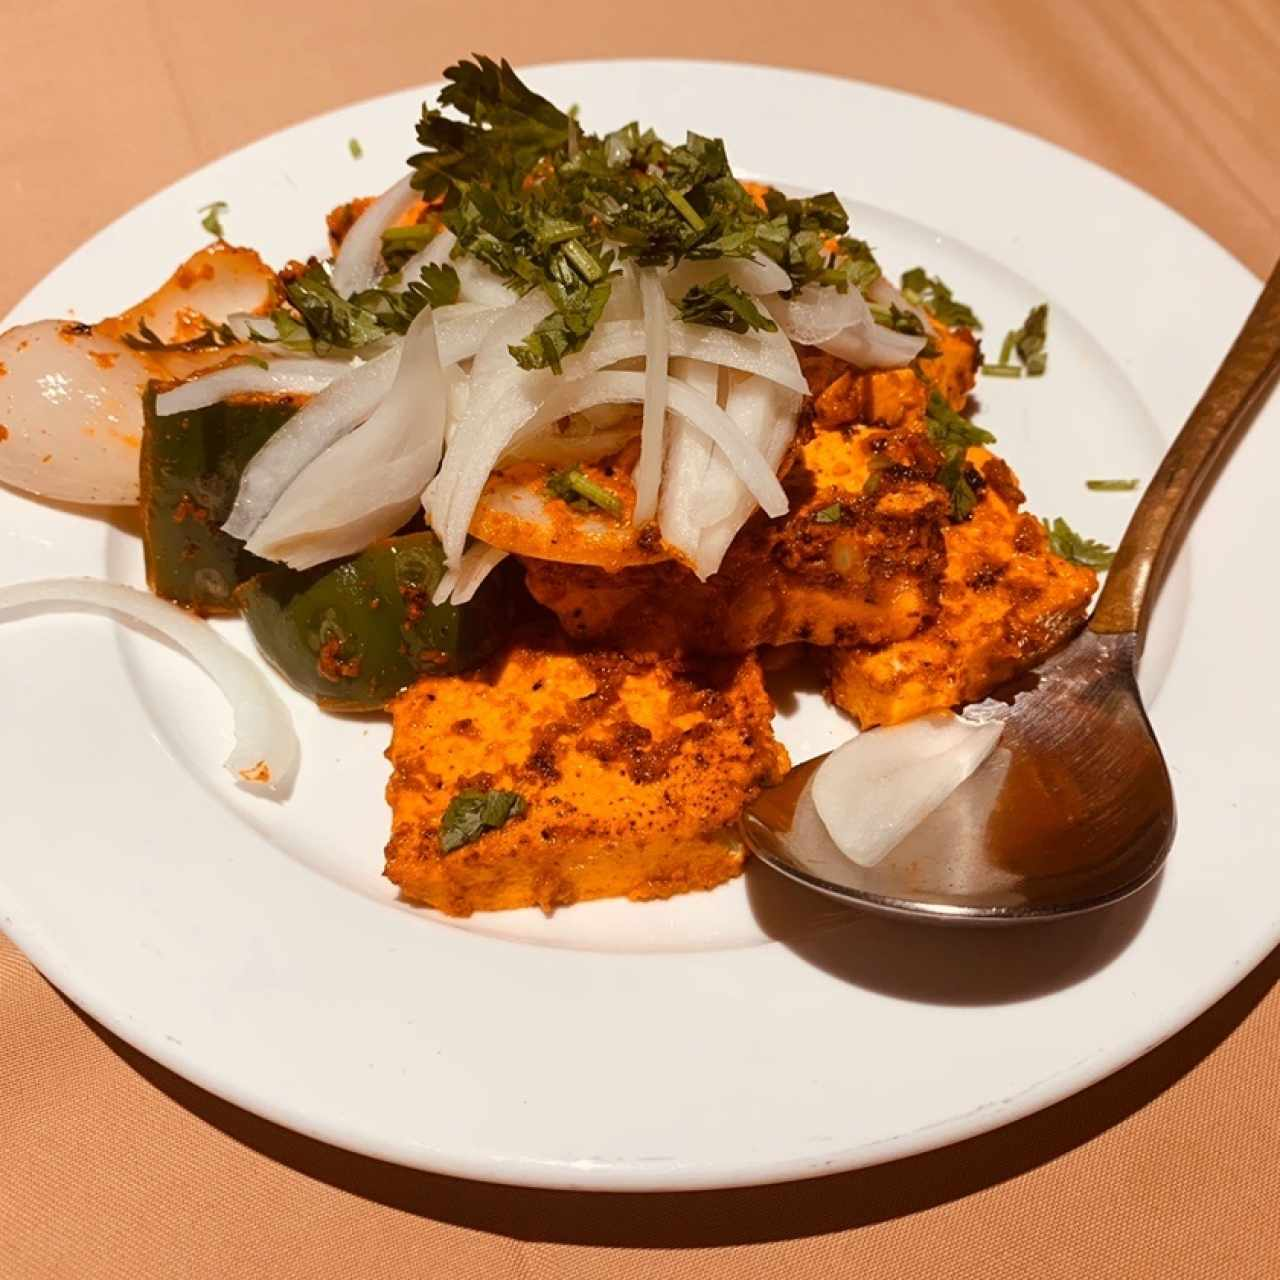 Paneer picante